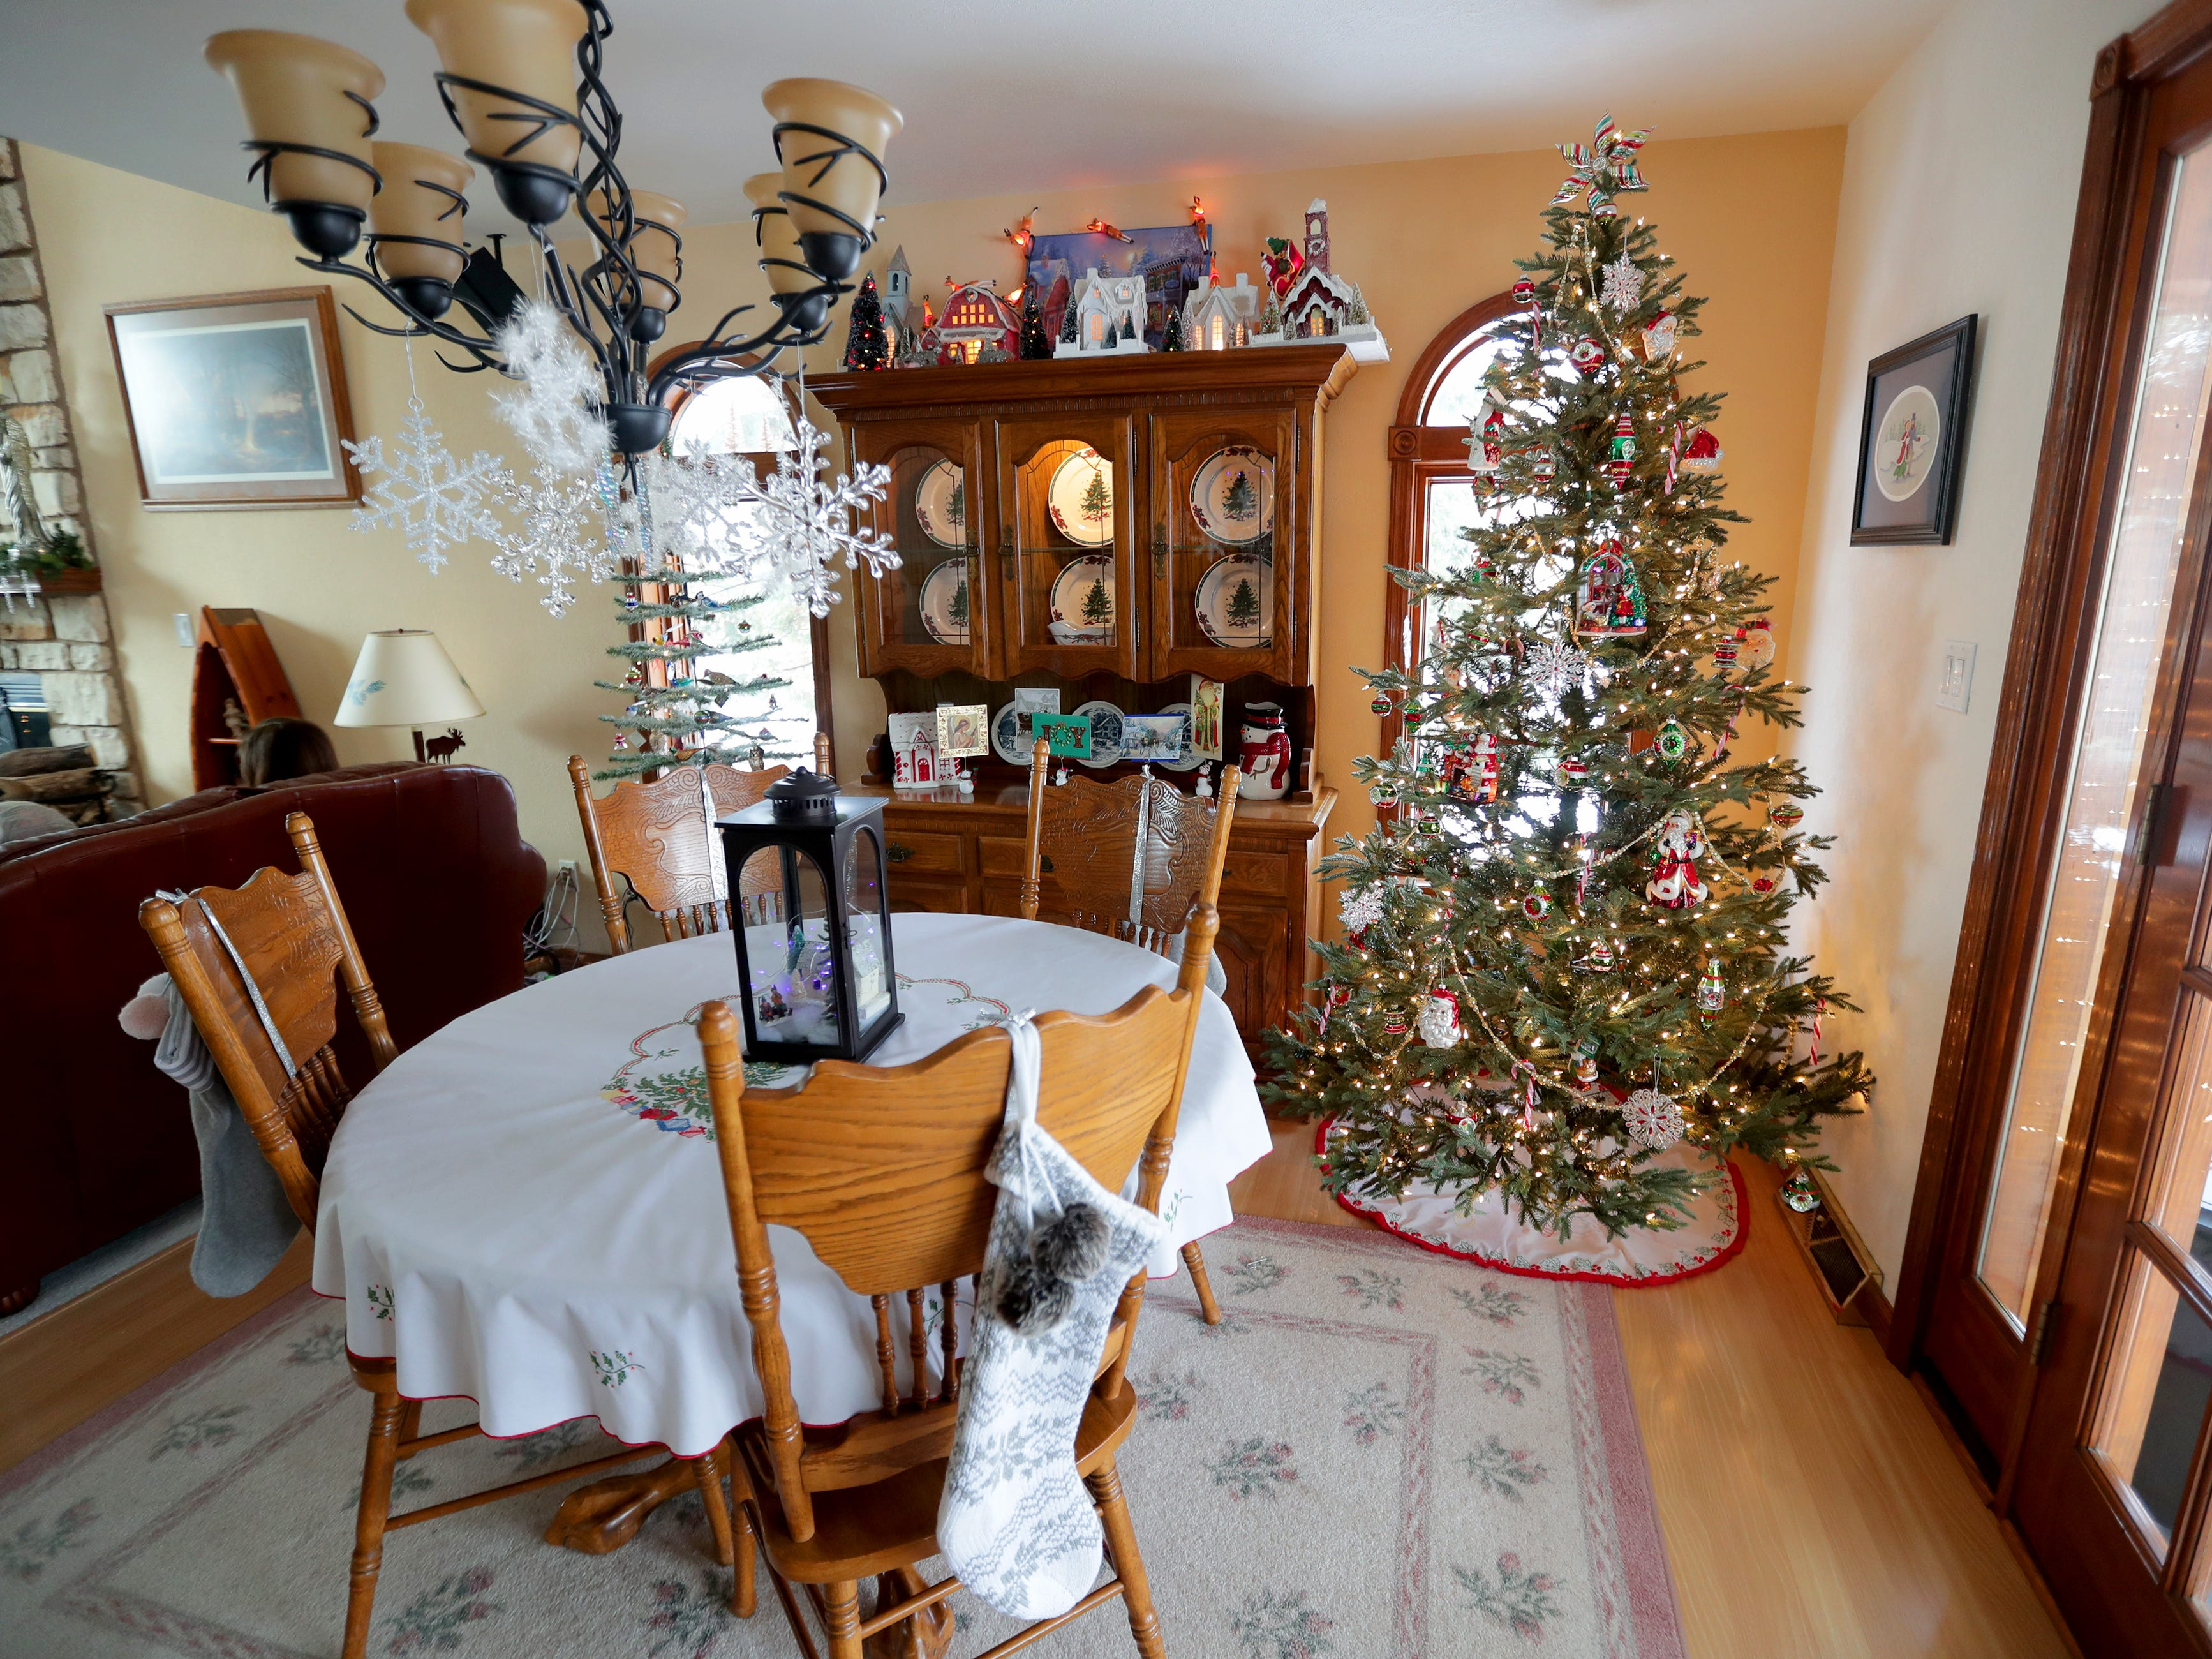 The dining room off the kitchen includes another tree and Christmas plates displayed in the china hutch.